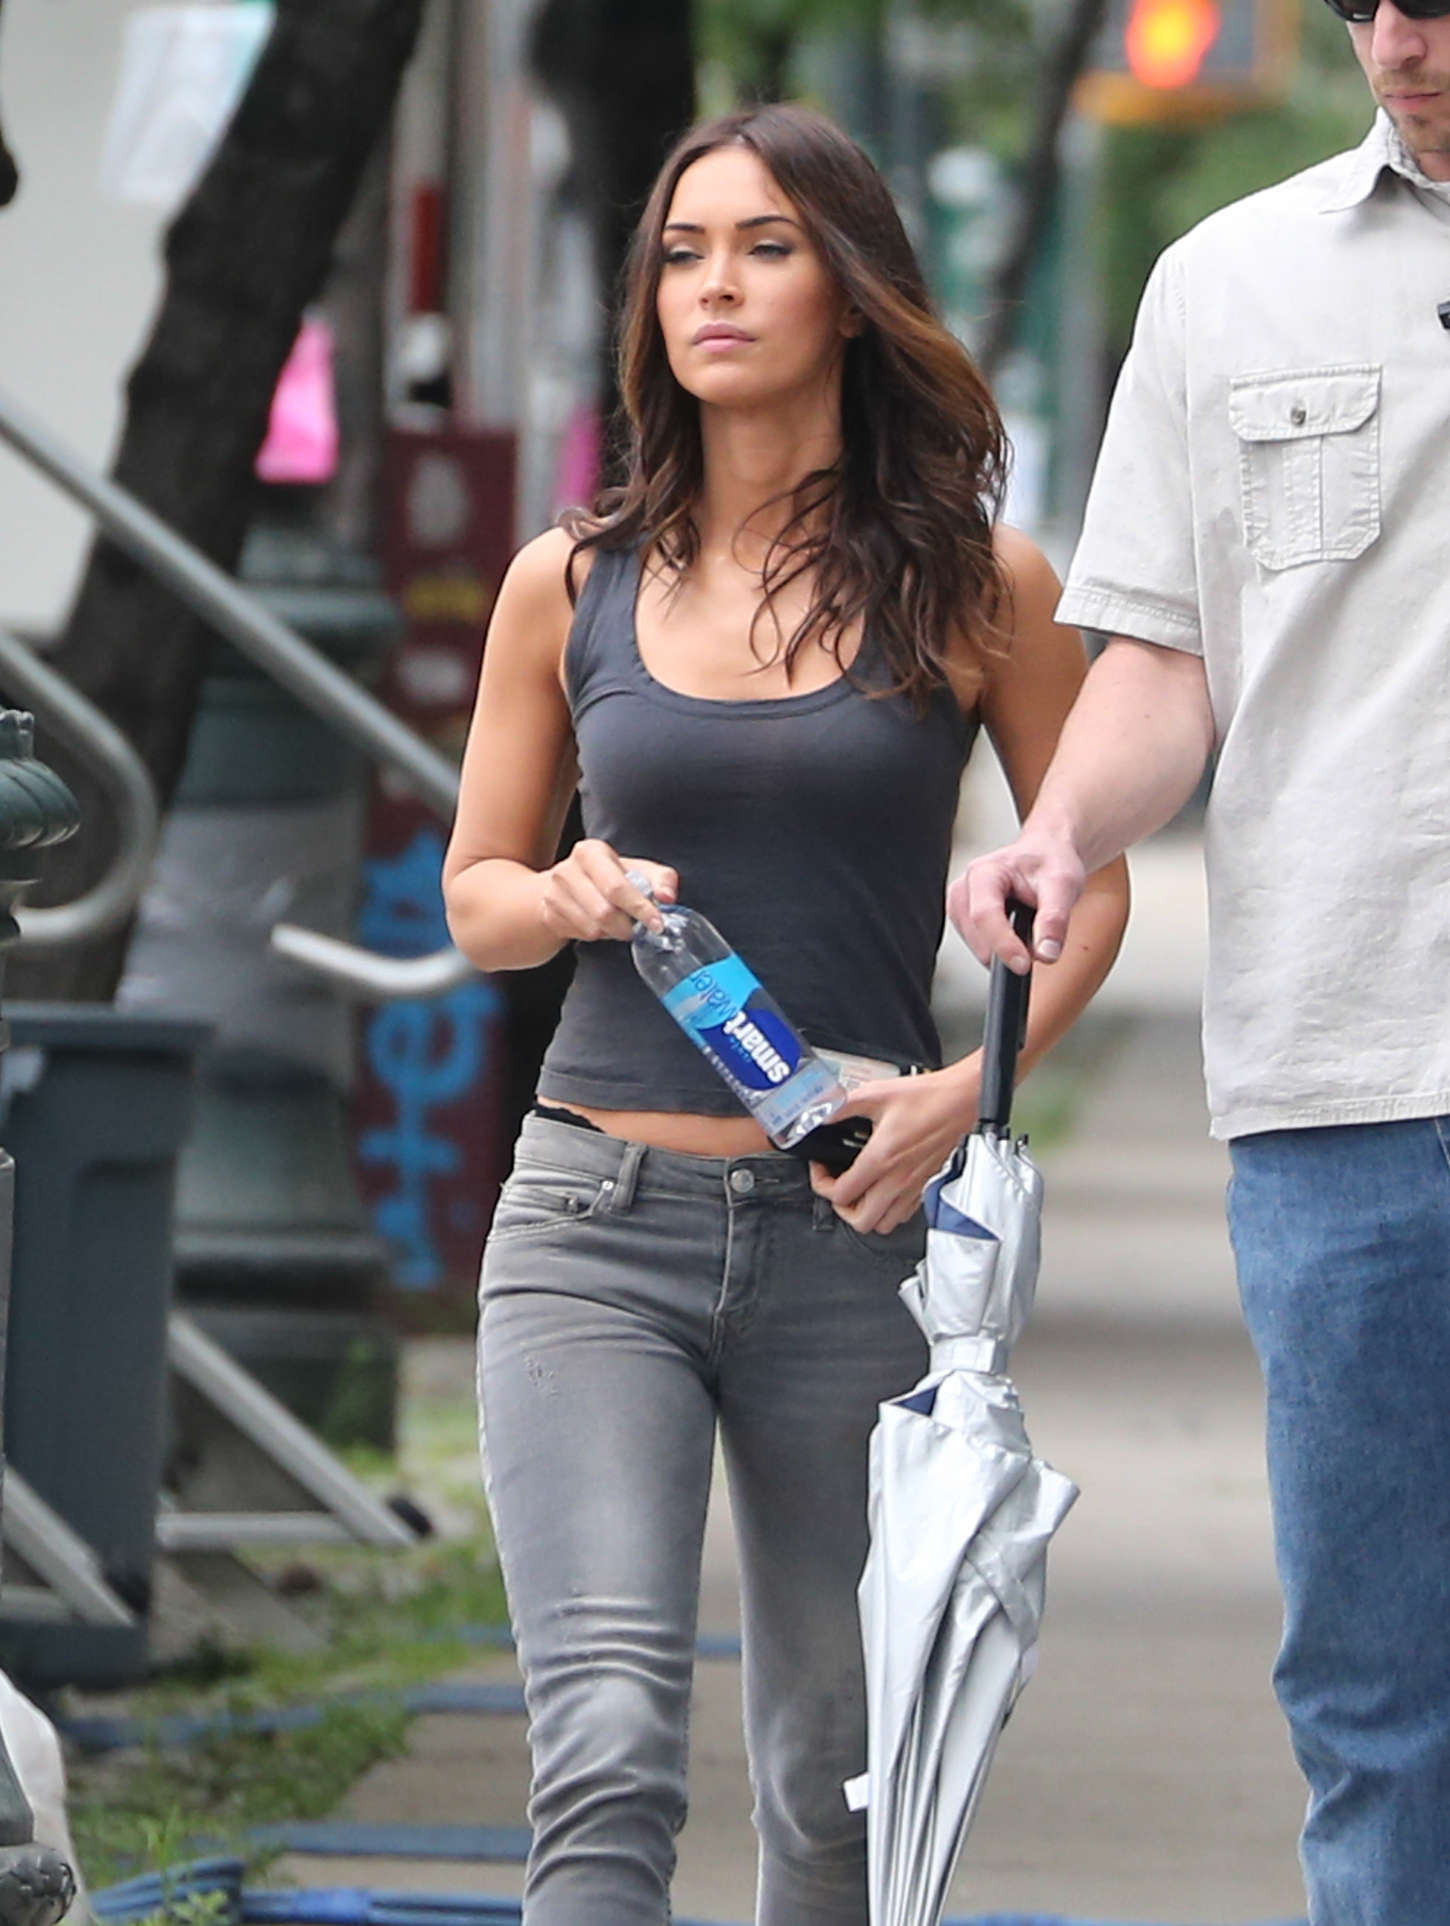 Megan Fox Booty in Jeans on Teenage Mutant Ninja Turtles 2